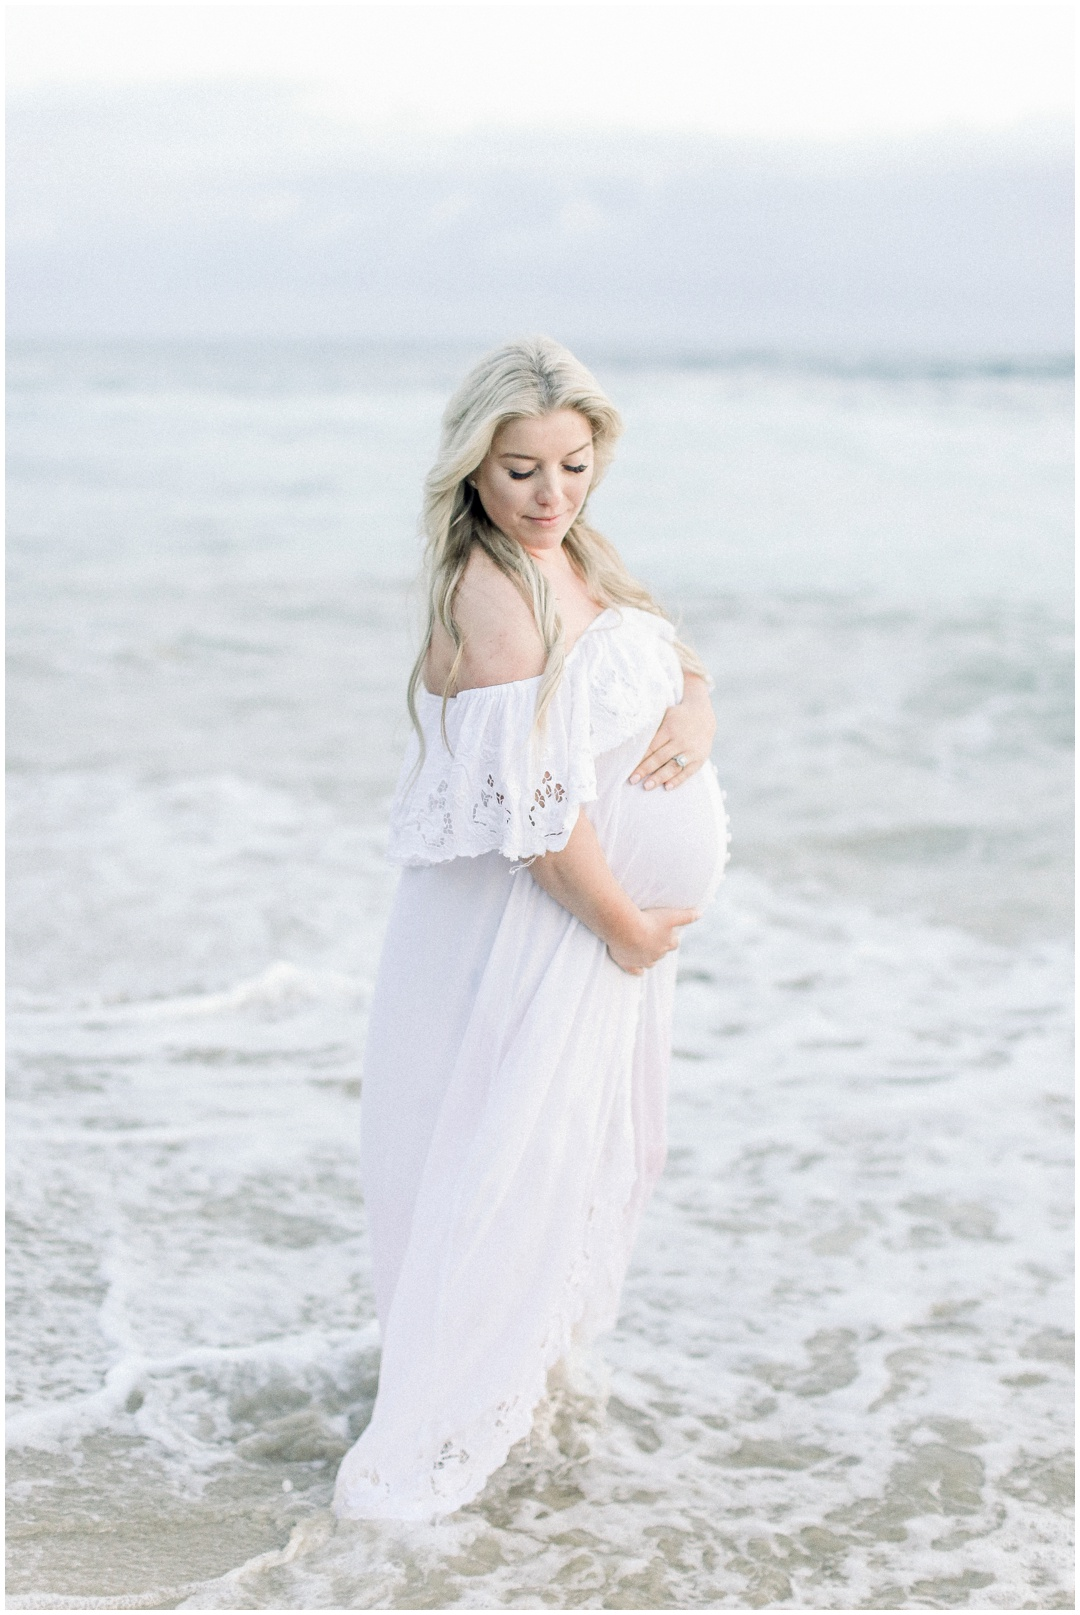 Newport_Beach_Newborn_Light_Airy_Natural_Photographer_Newport_Beach_Photographer_Orange_County_Family_Photographer_Cori_Kleckner_Photography_Newport_Beach_Photographer_Maternity_kole_calhoun56_kole_calhoun_Jennifer_Calhoun_Knox_Calhoun_3722.jpg